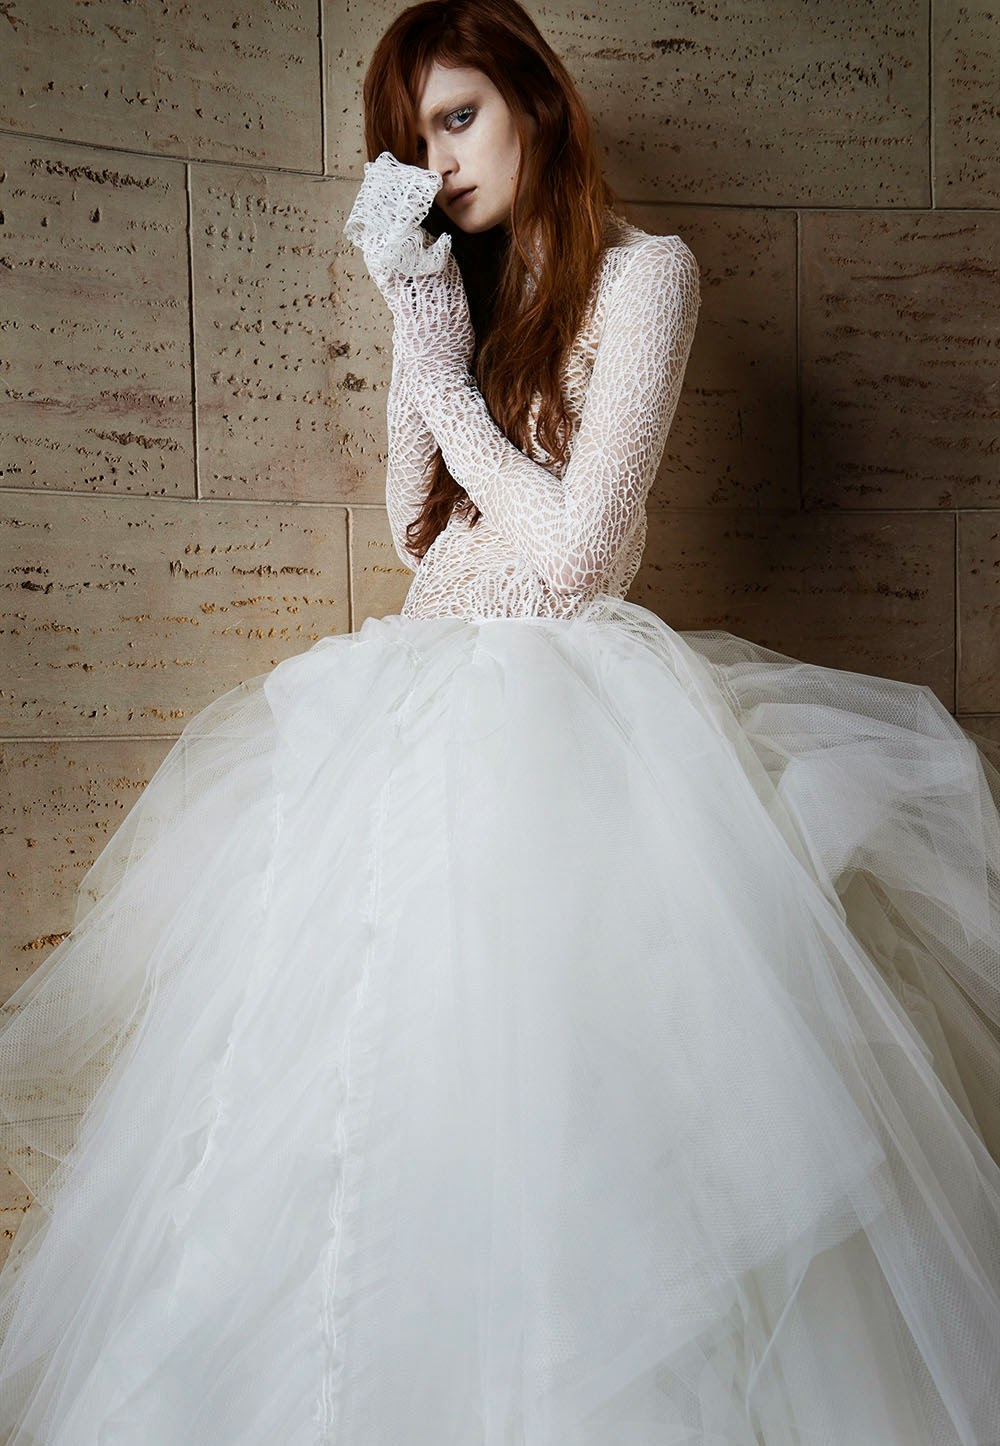 Vera wang spring 2015 wedding dresses world of bridal for Vera wang wedding dress used